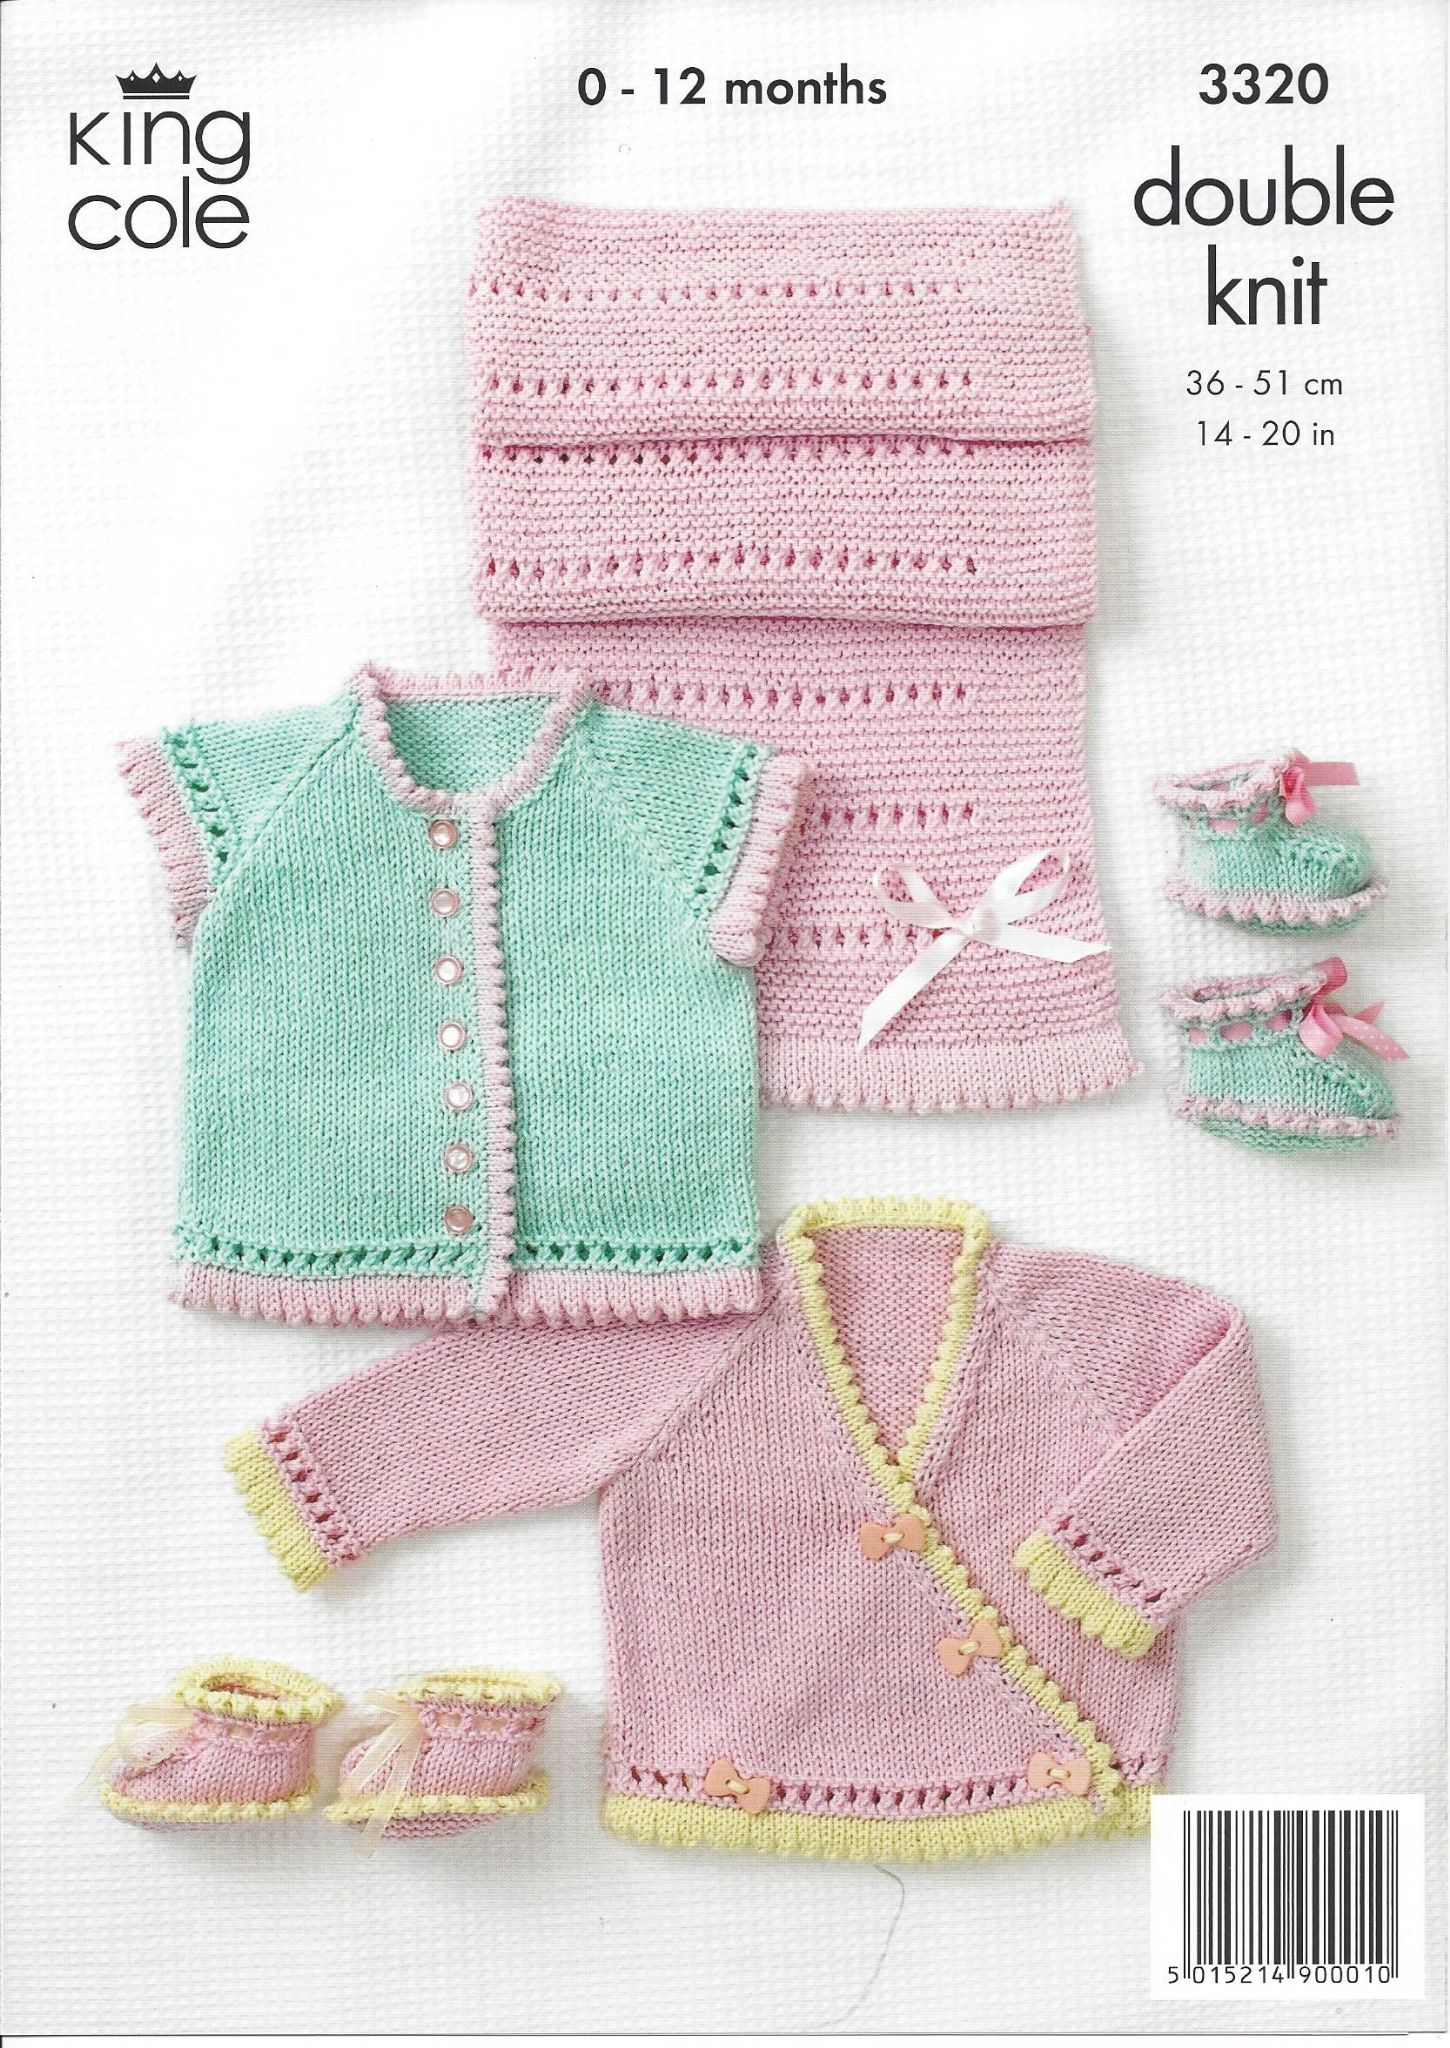 King Cole Baby DK Knitting Pattern - 3320 Round Neck Crossover Cardigan Shoes...